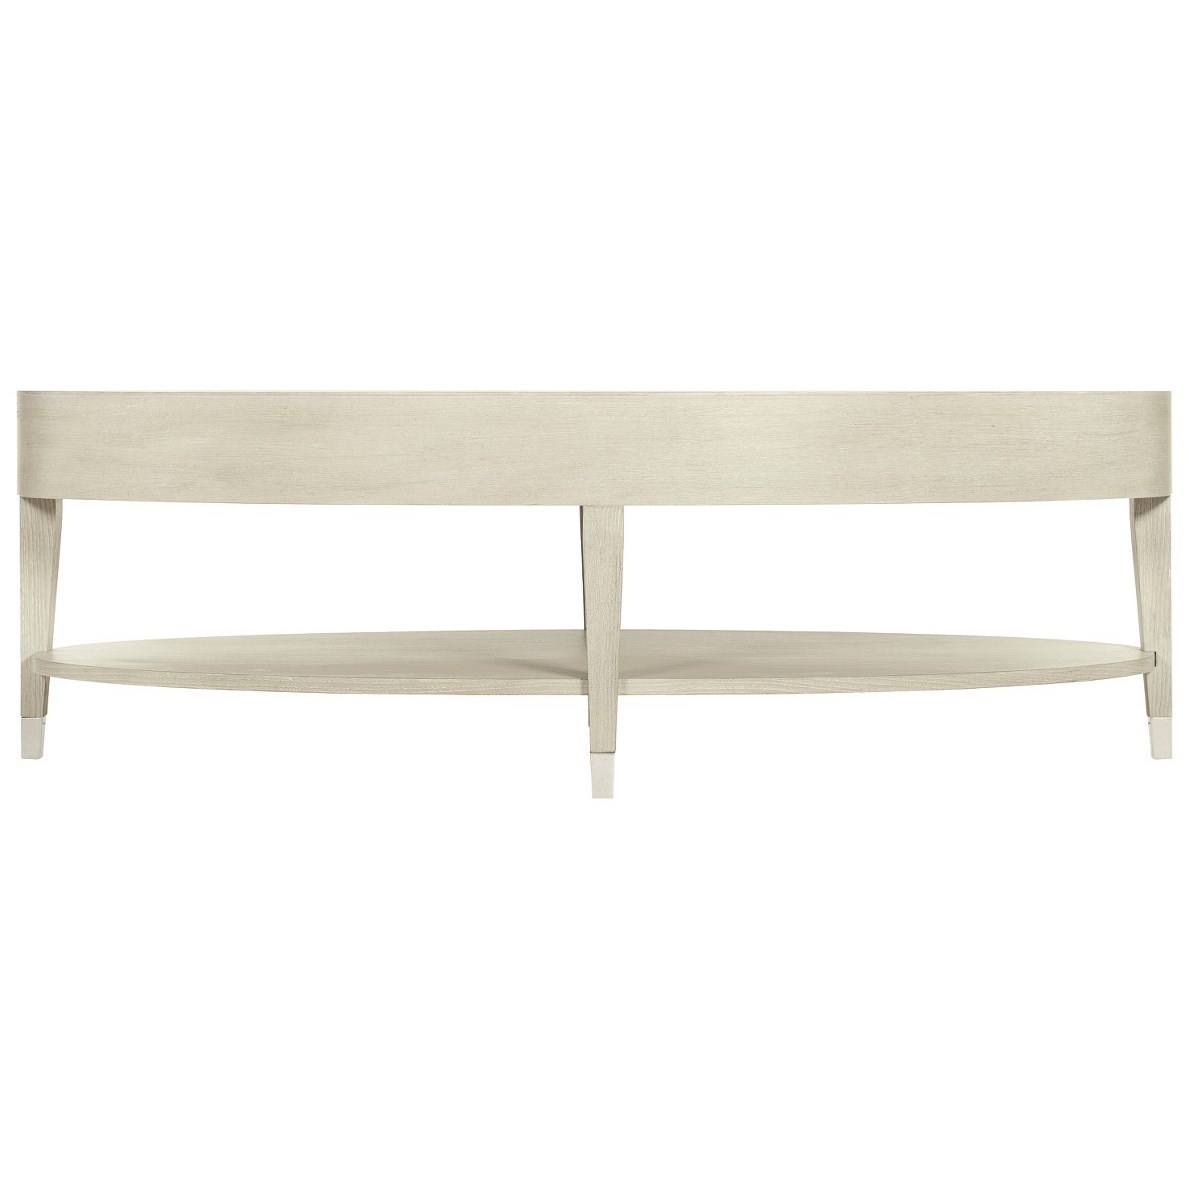 East Hampton Oval Cocktail Table by Bernhardt at Baer's Furniture